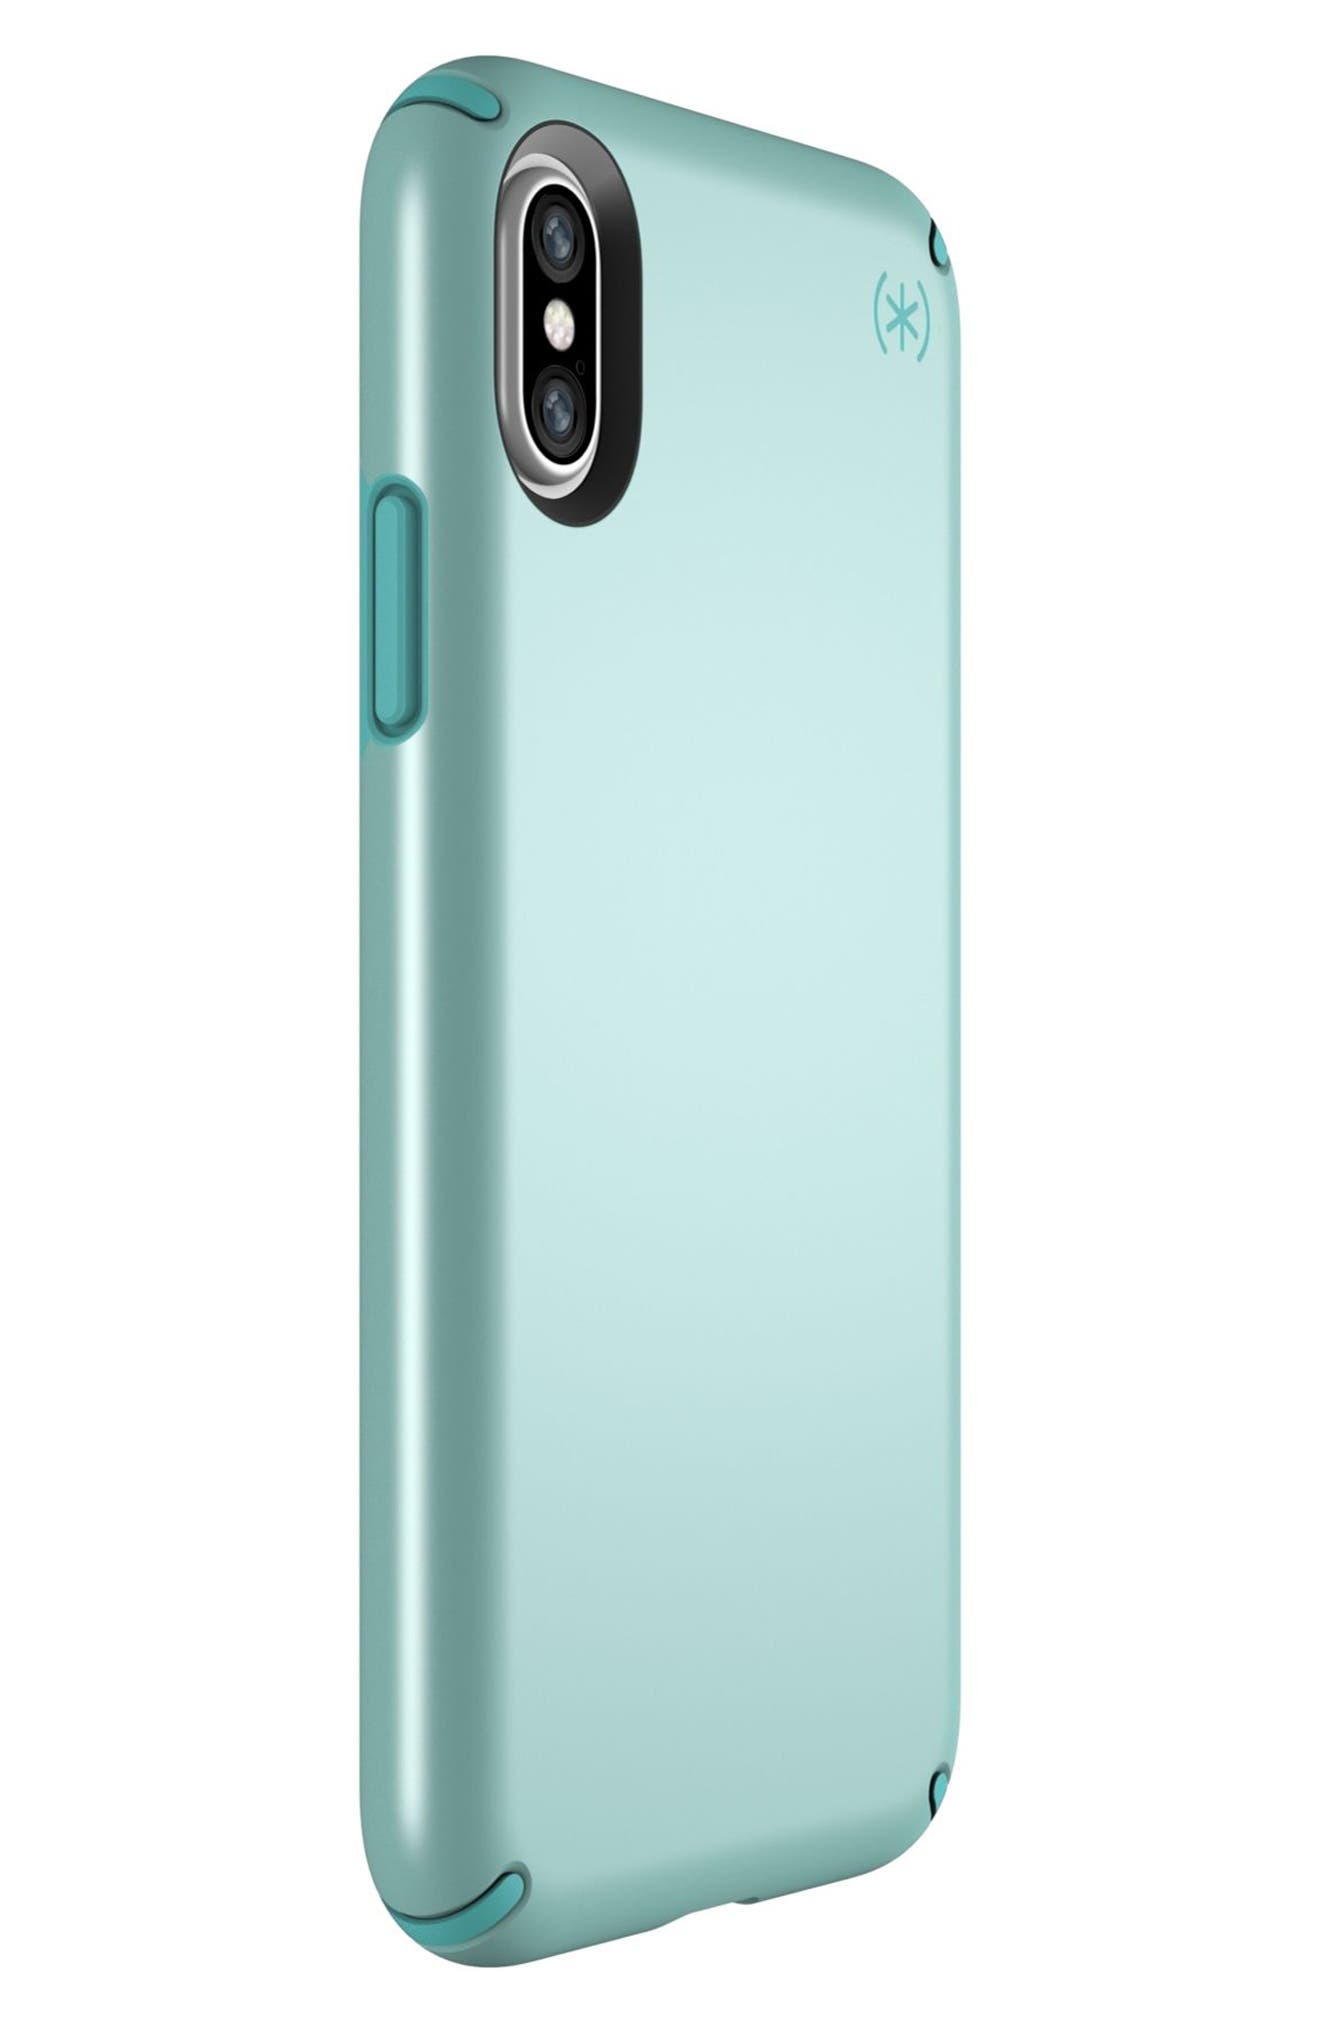 SPECK, iPhone X & Xs Case, Alternate thumbnail 6, color, PEPPERMINT GREEN / TEAL